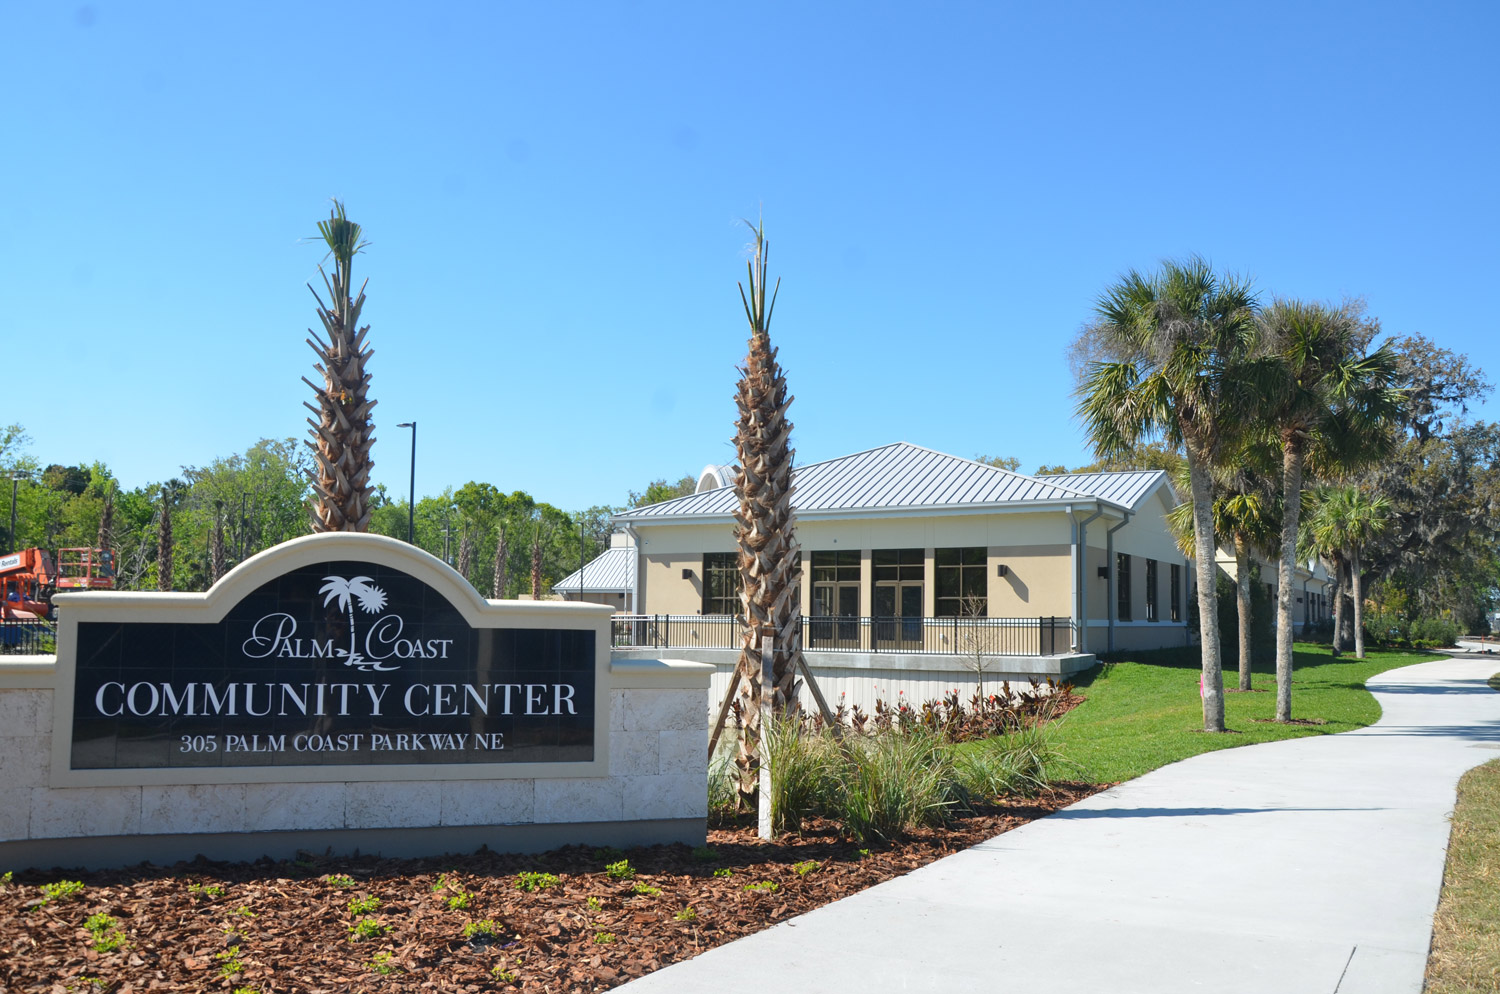 The new palm coast community center a bounty of spaces welcoming uses and nature flaglerlive for Palm beach gardens recreation center